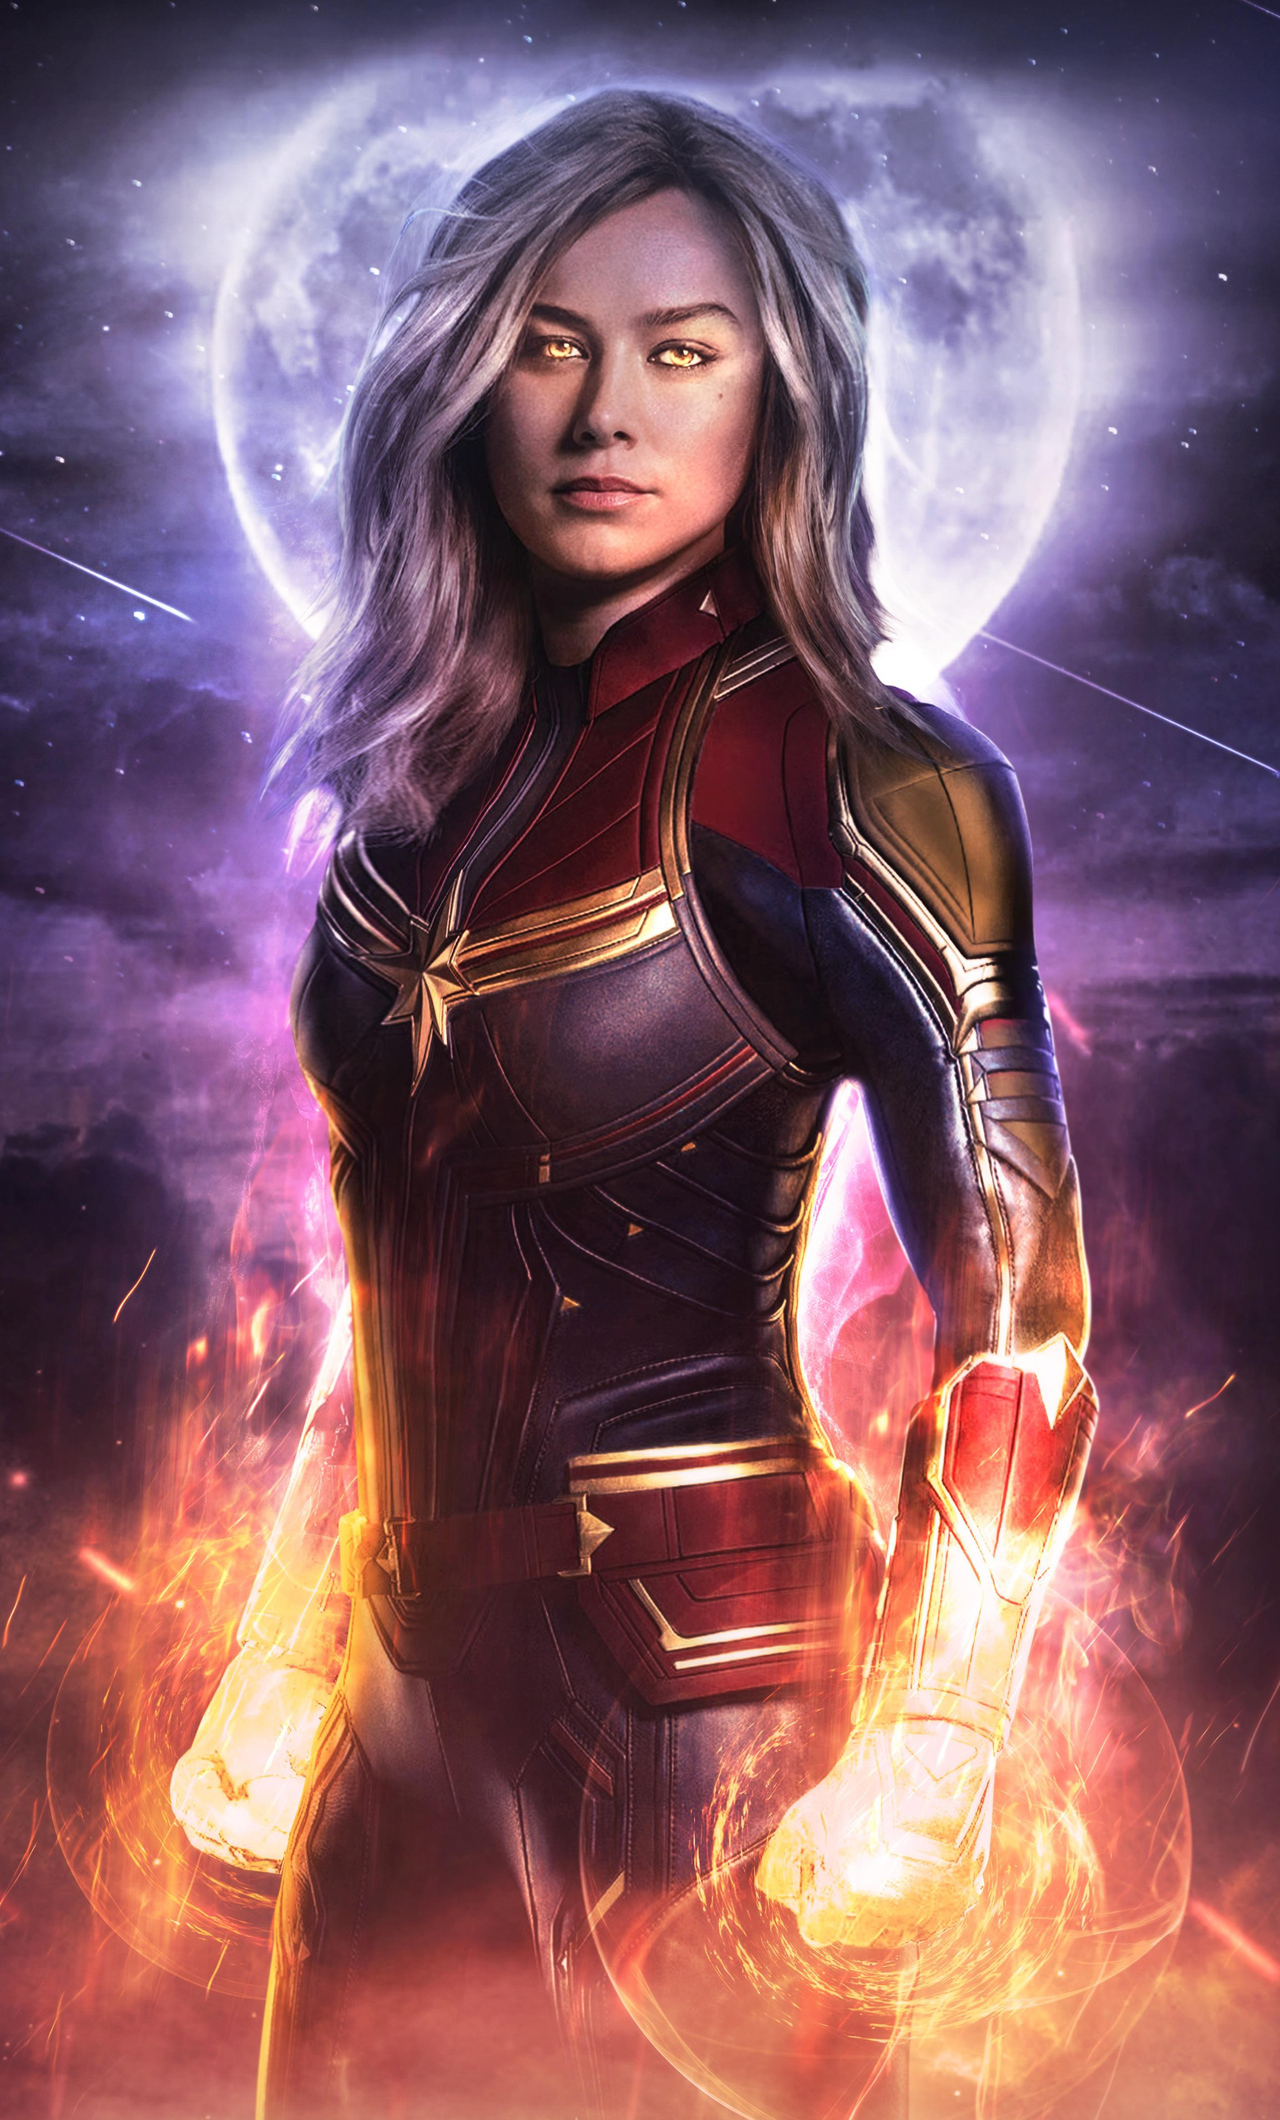 1280x2120 Captain Marvel Avengers End Game Iphone 6 Hd 4k